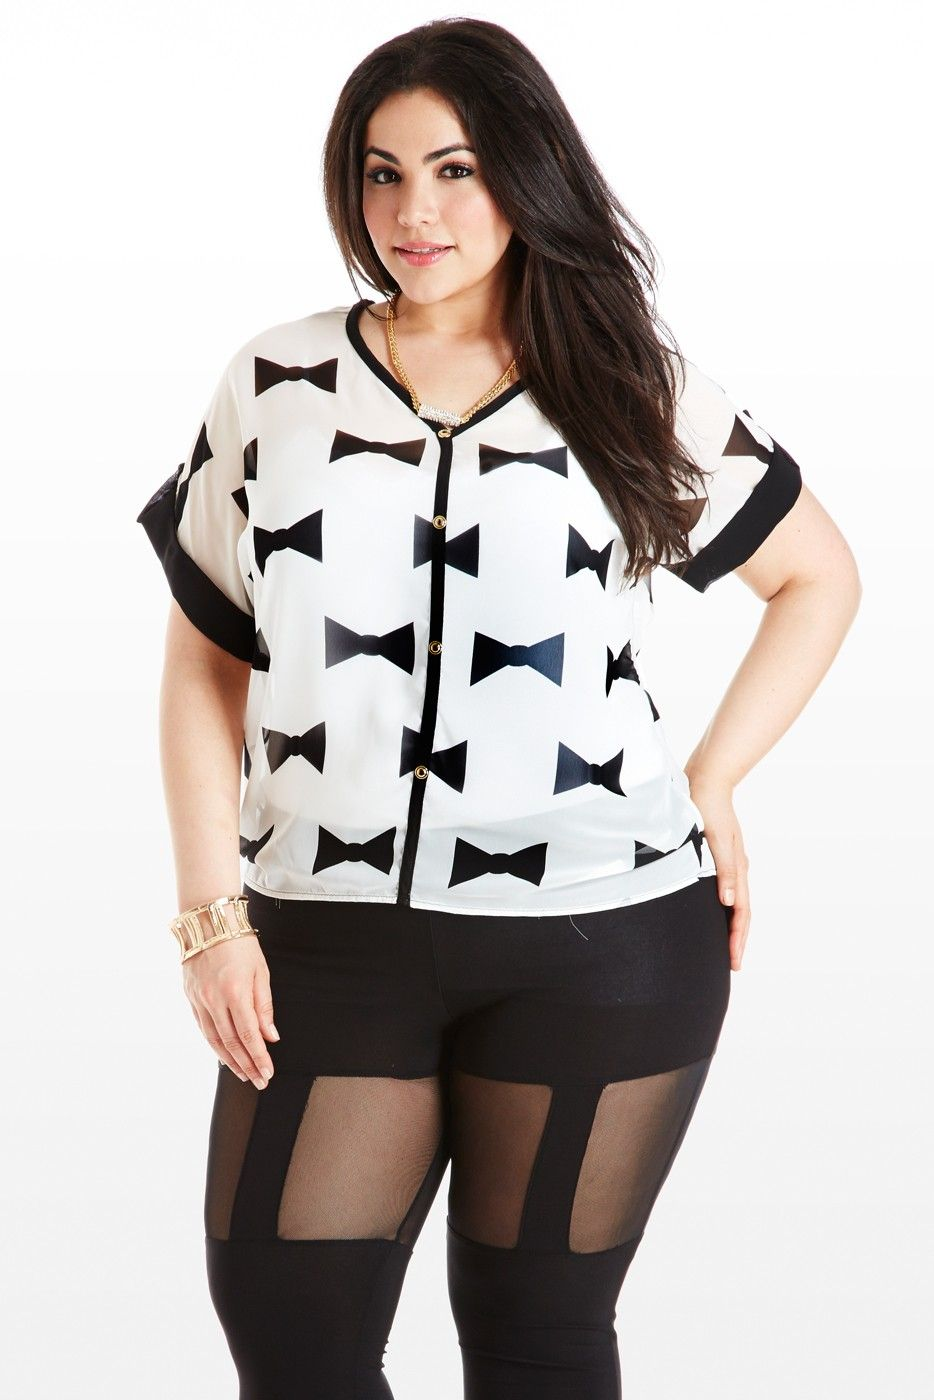 Teen Plus Size Clothing 5 best outfits - curvyoutfits.com |Teen Plus Size Fashion